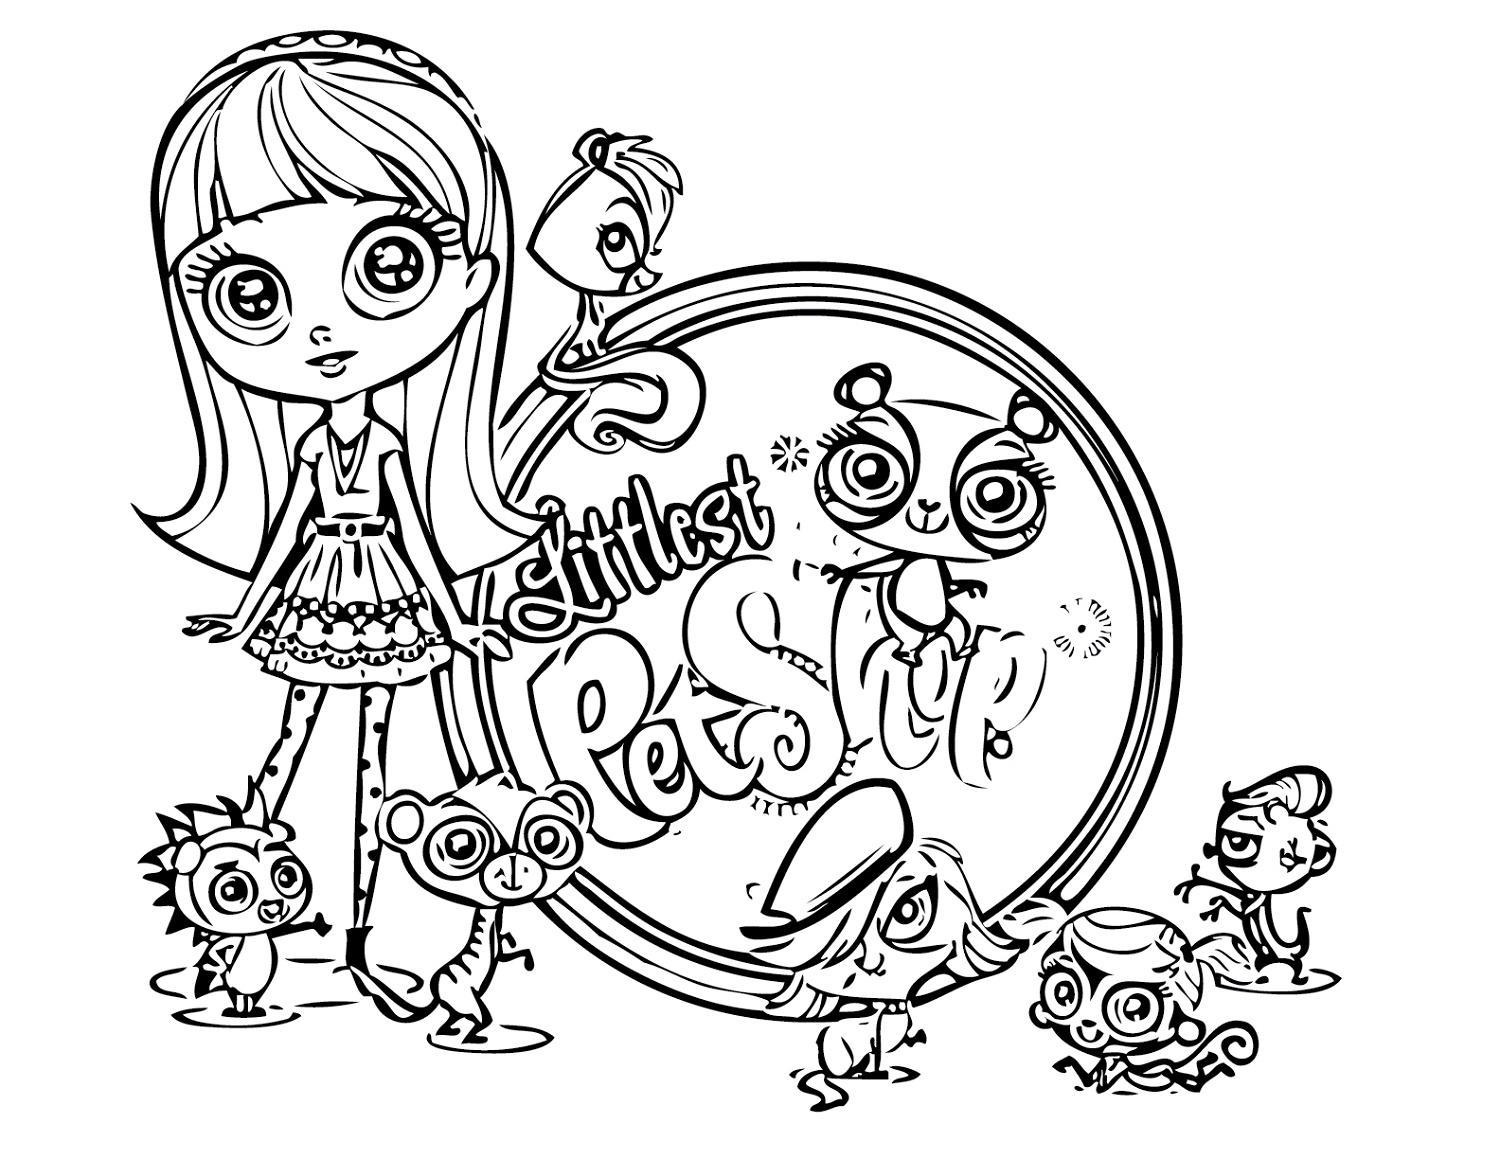 Littlest Pet Shop Coloring Pages For All Ages